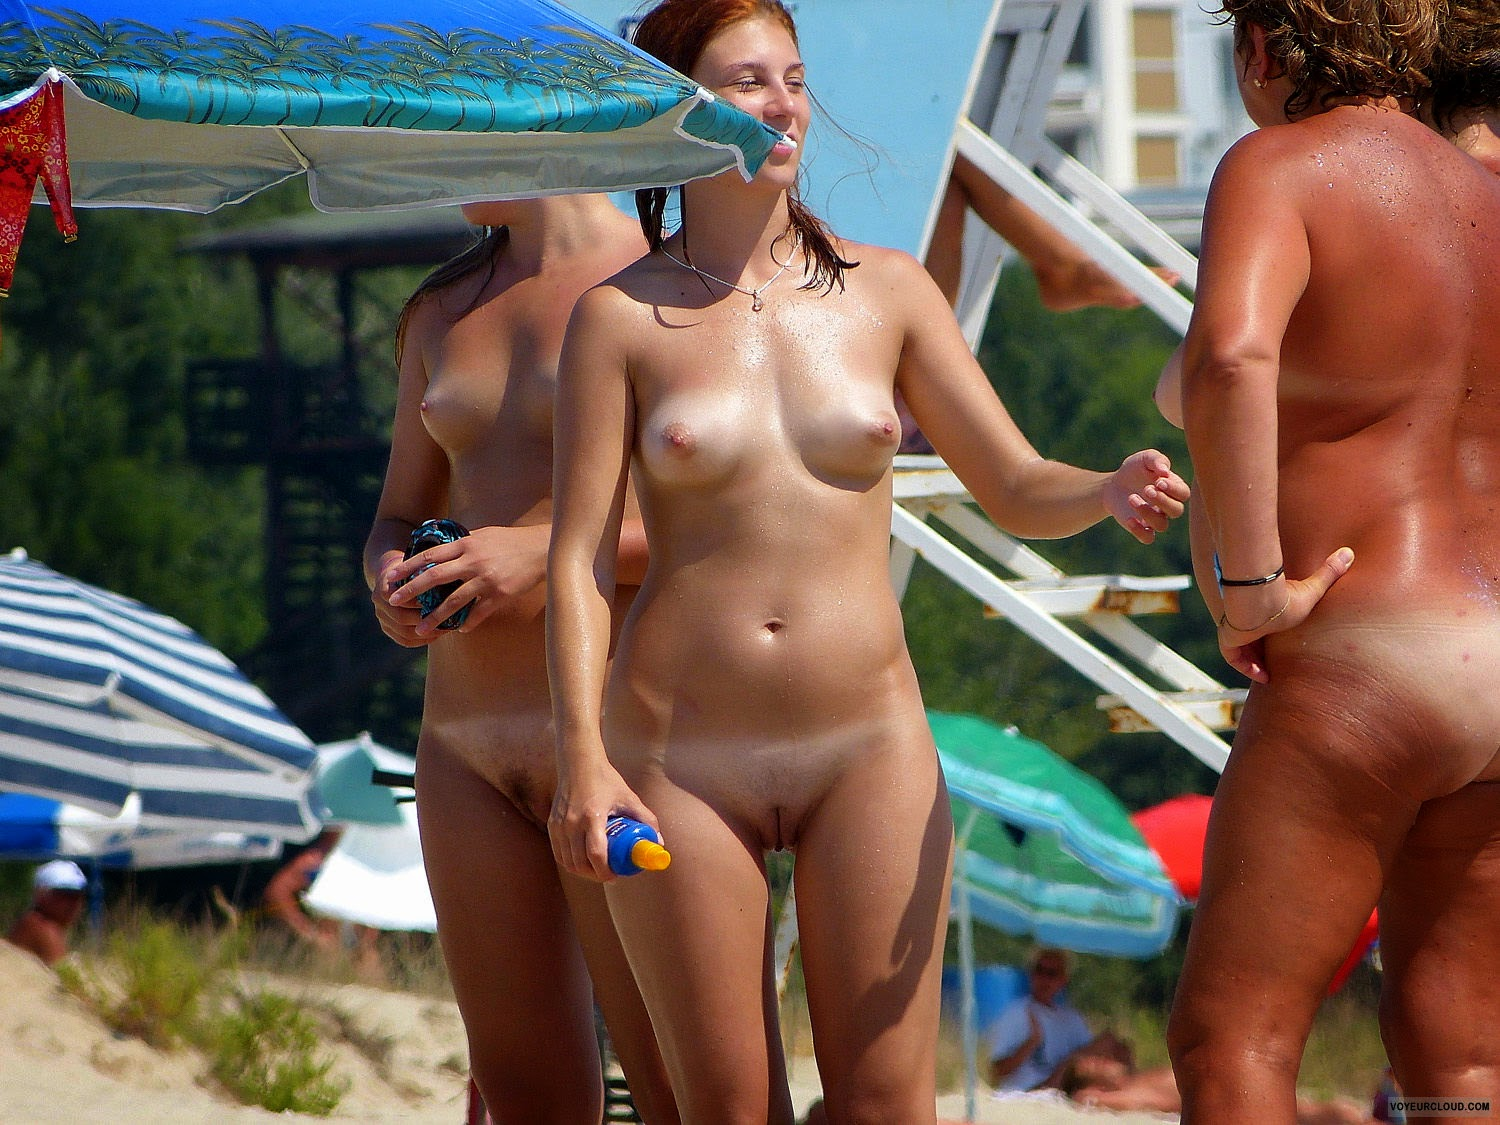 Nudism - Photo - Hq  Tanlines - Girls - Nude Beach-9562